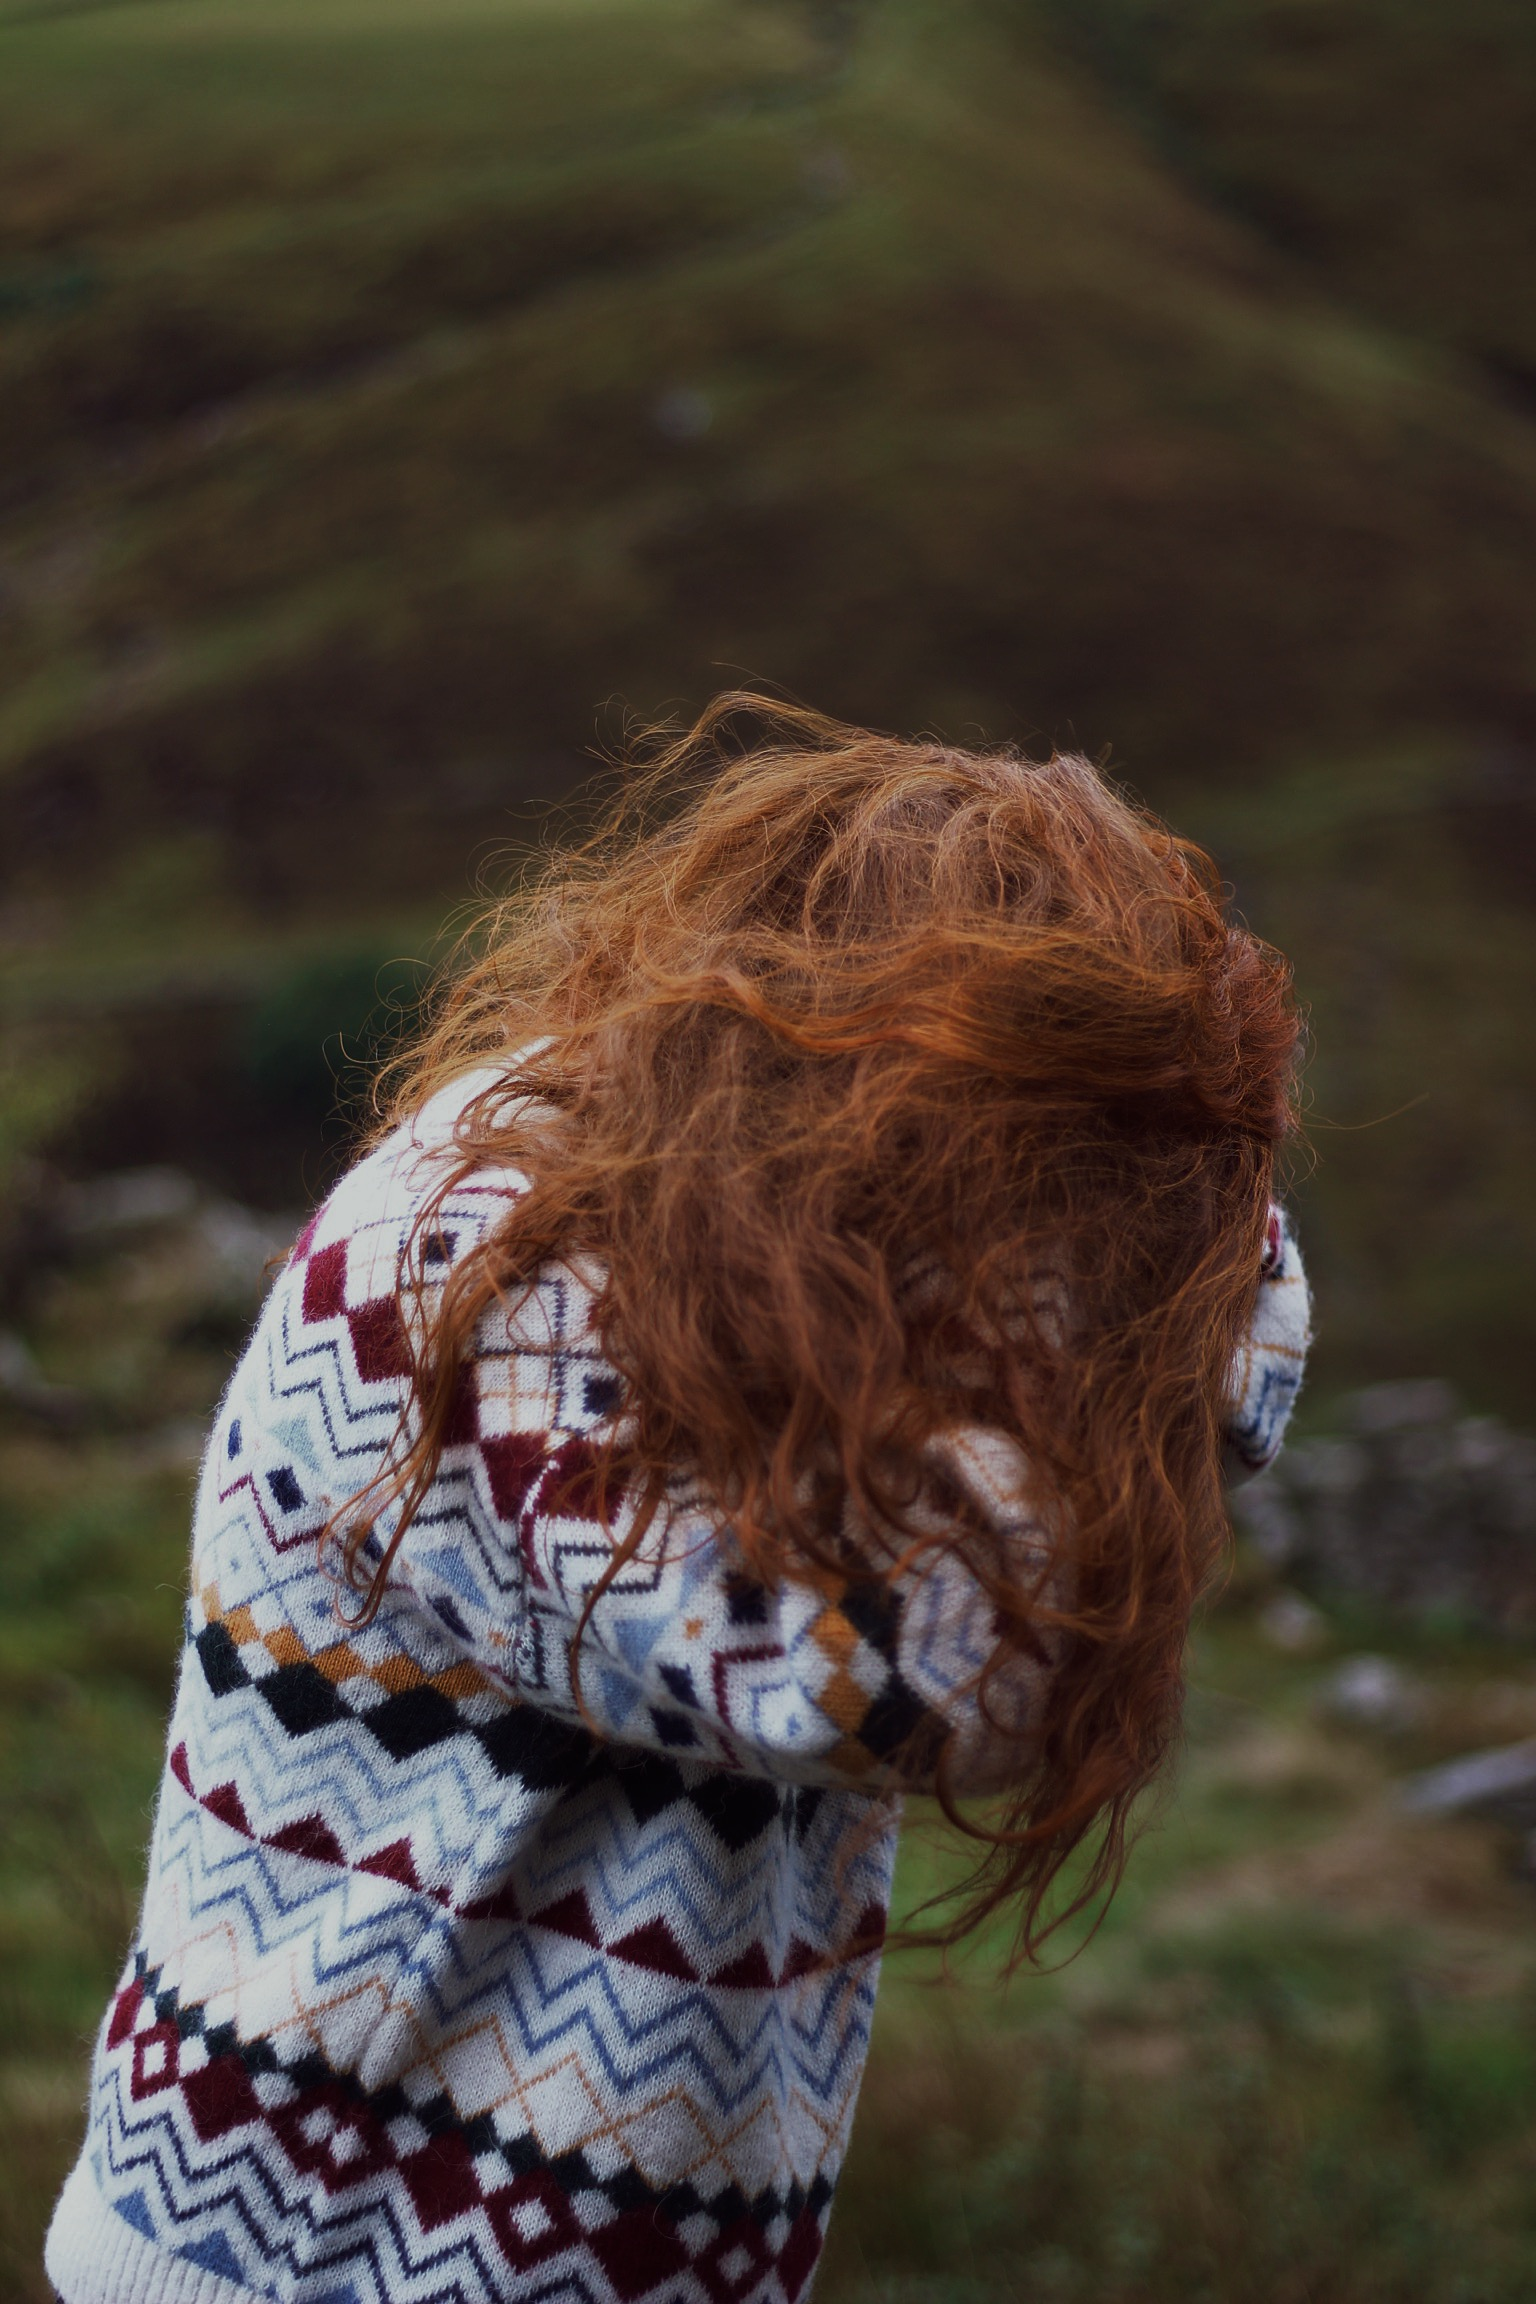 Red haired girl shaking hair in wind